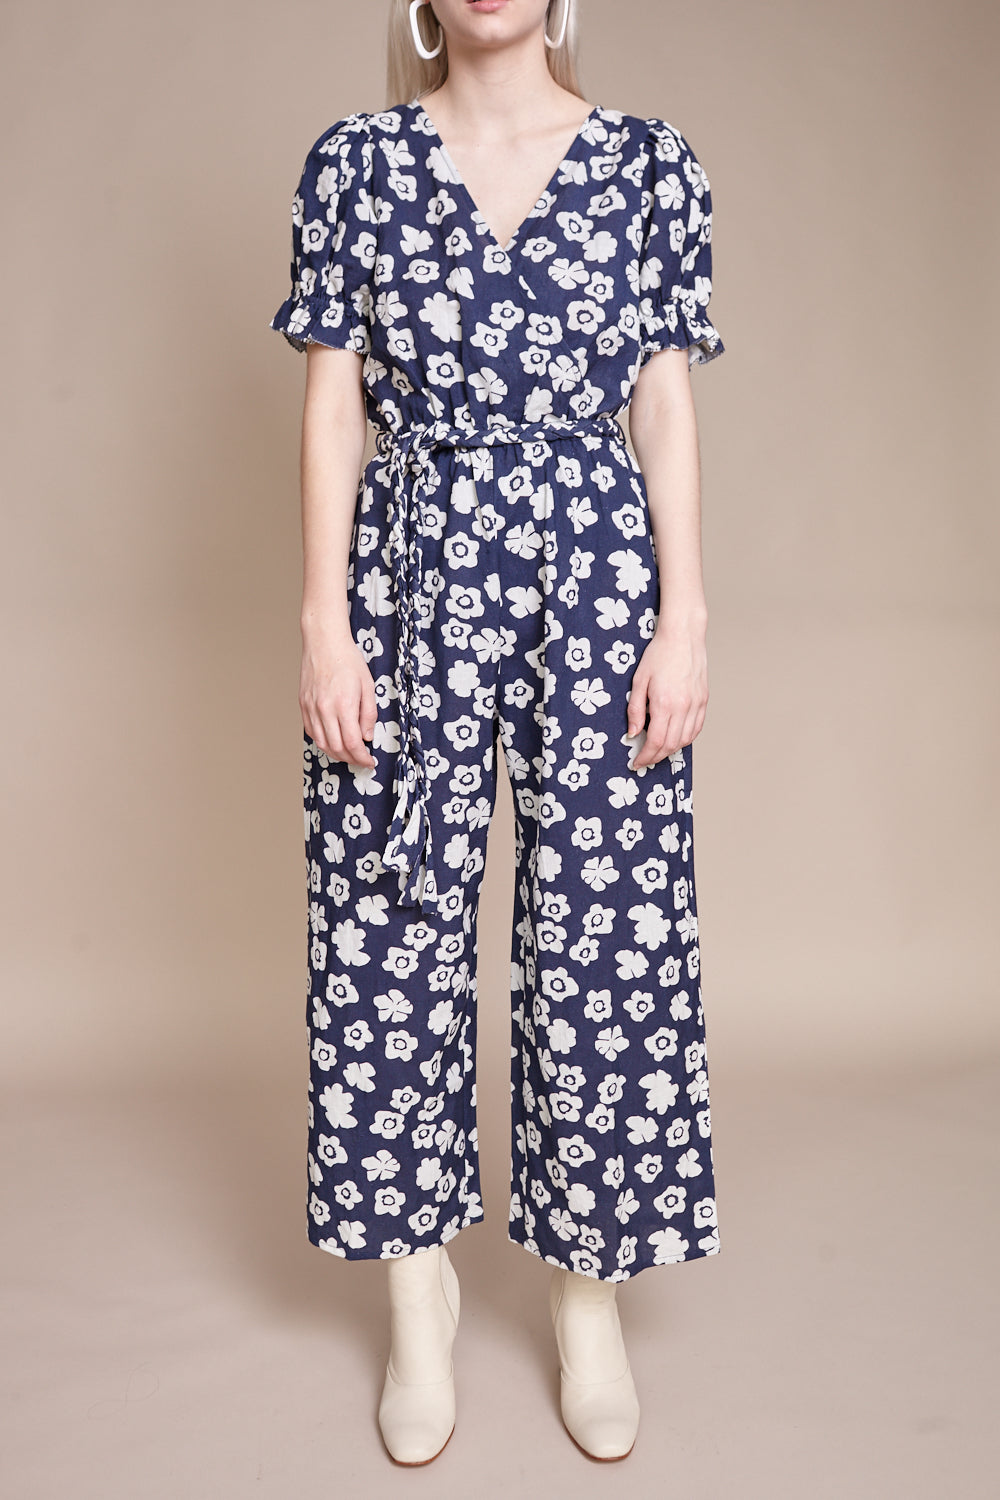 Apiece Apart Charbol Jumpsuit in Bold Flores Navy - Vert & Vogue